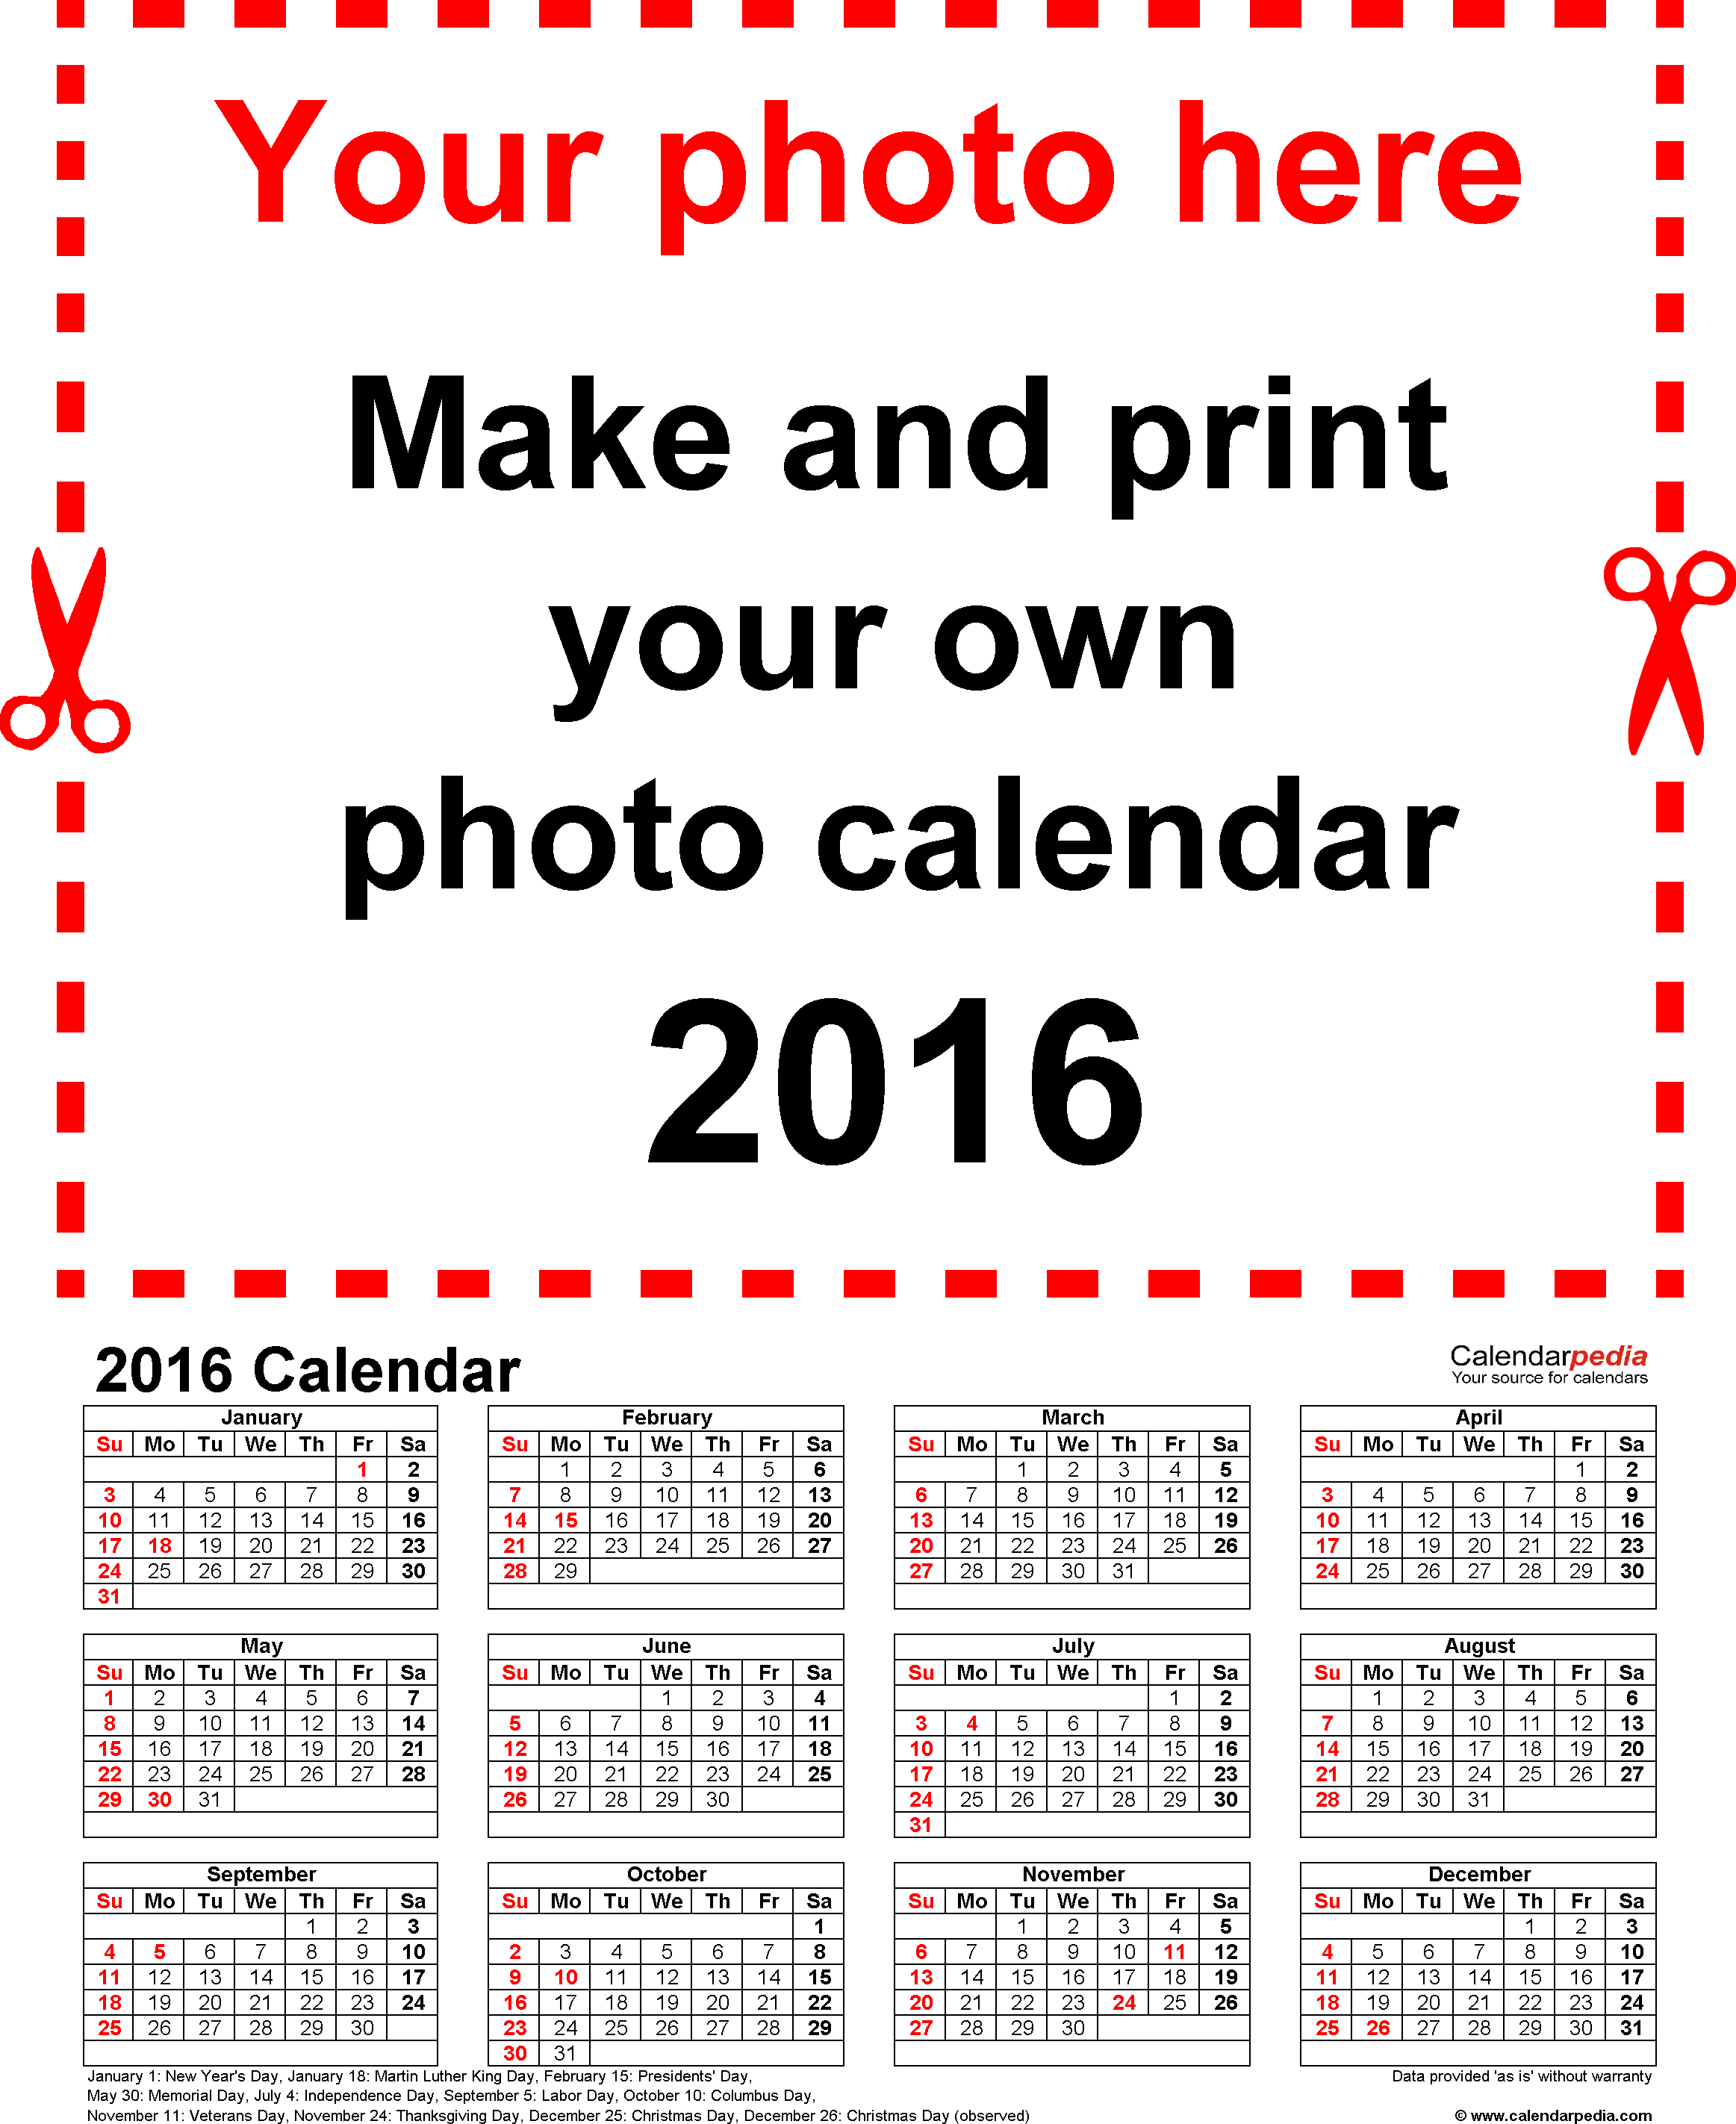 ... calendar 2016 for PDF, 12 pages, portrait format, whole year on one